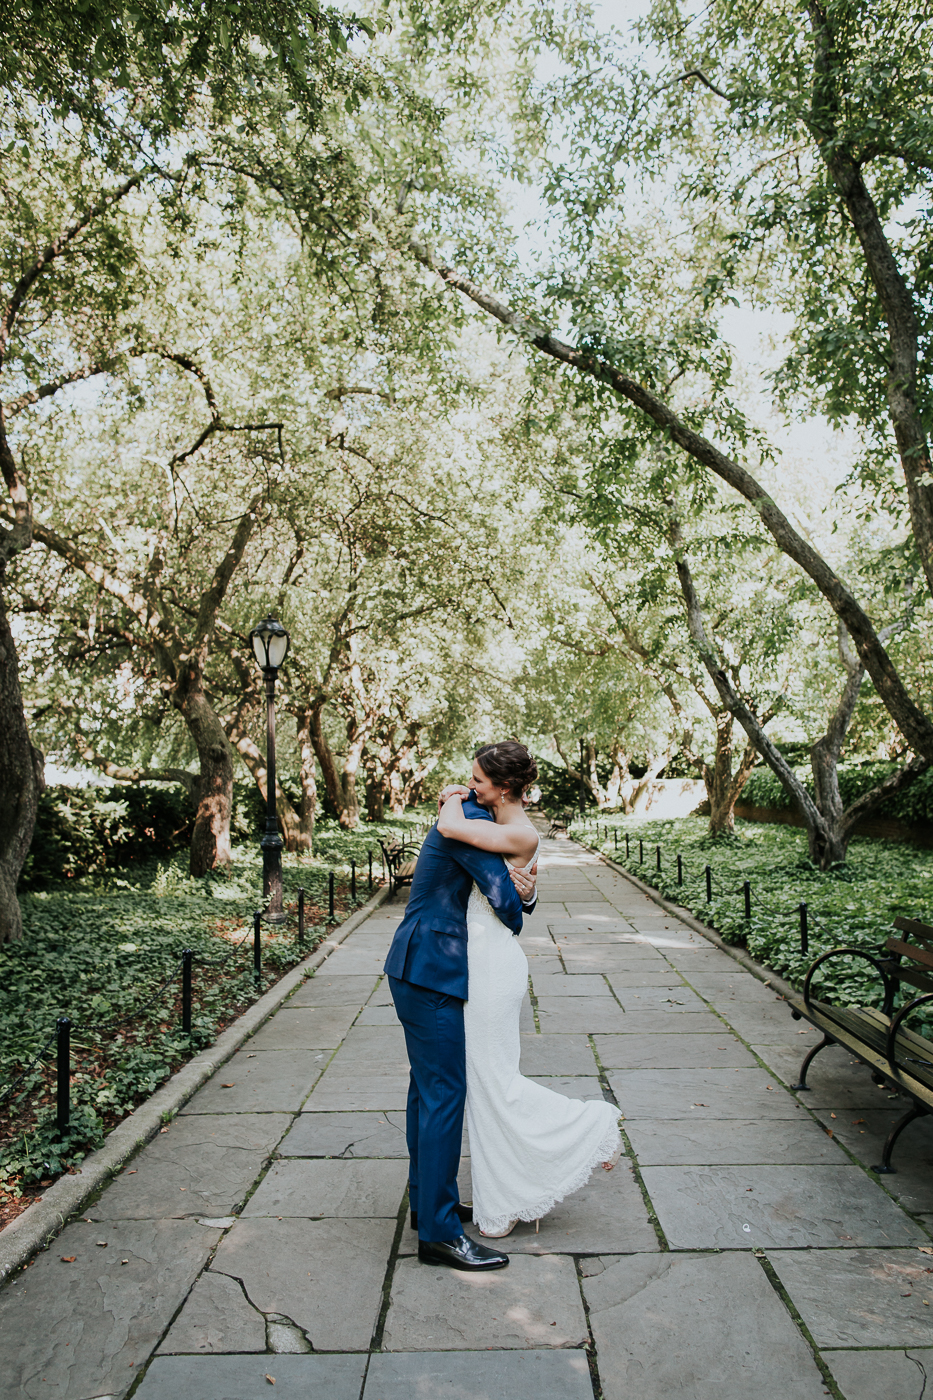 NYC-Central-Park-Conservatory-Garden-Intimate-Elopement-Documentary-Wedding-Photographer-38.jpg